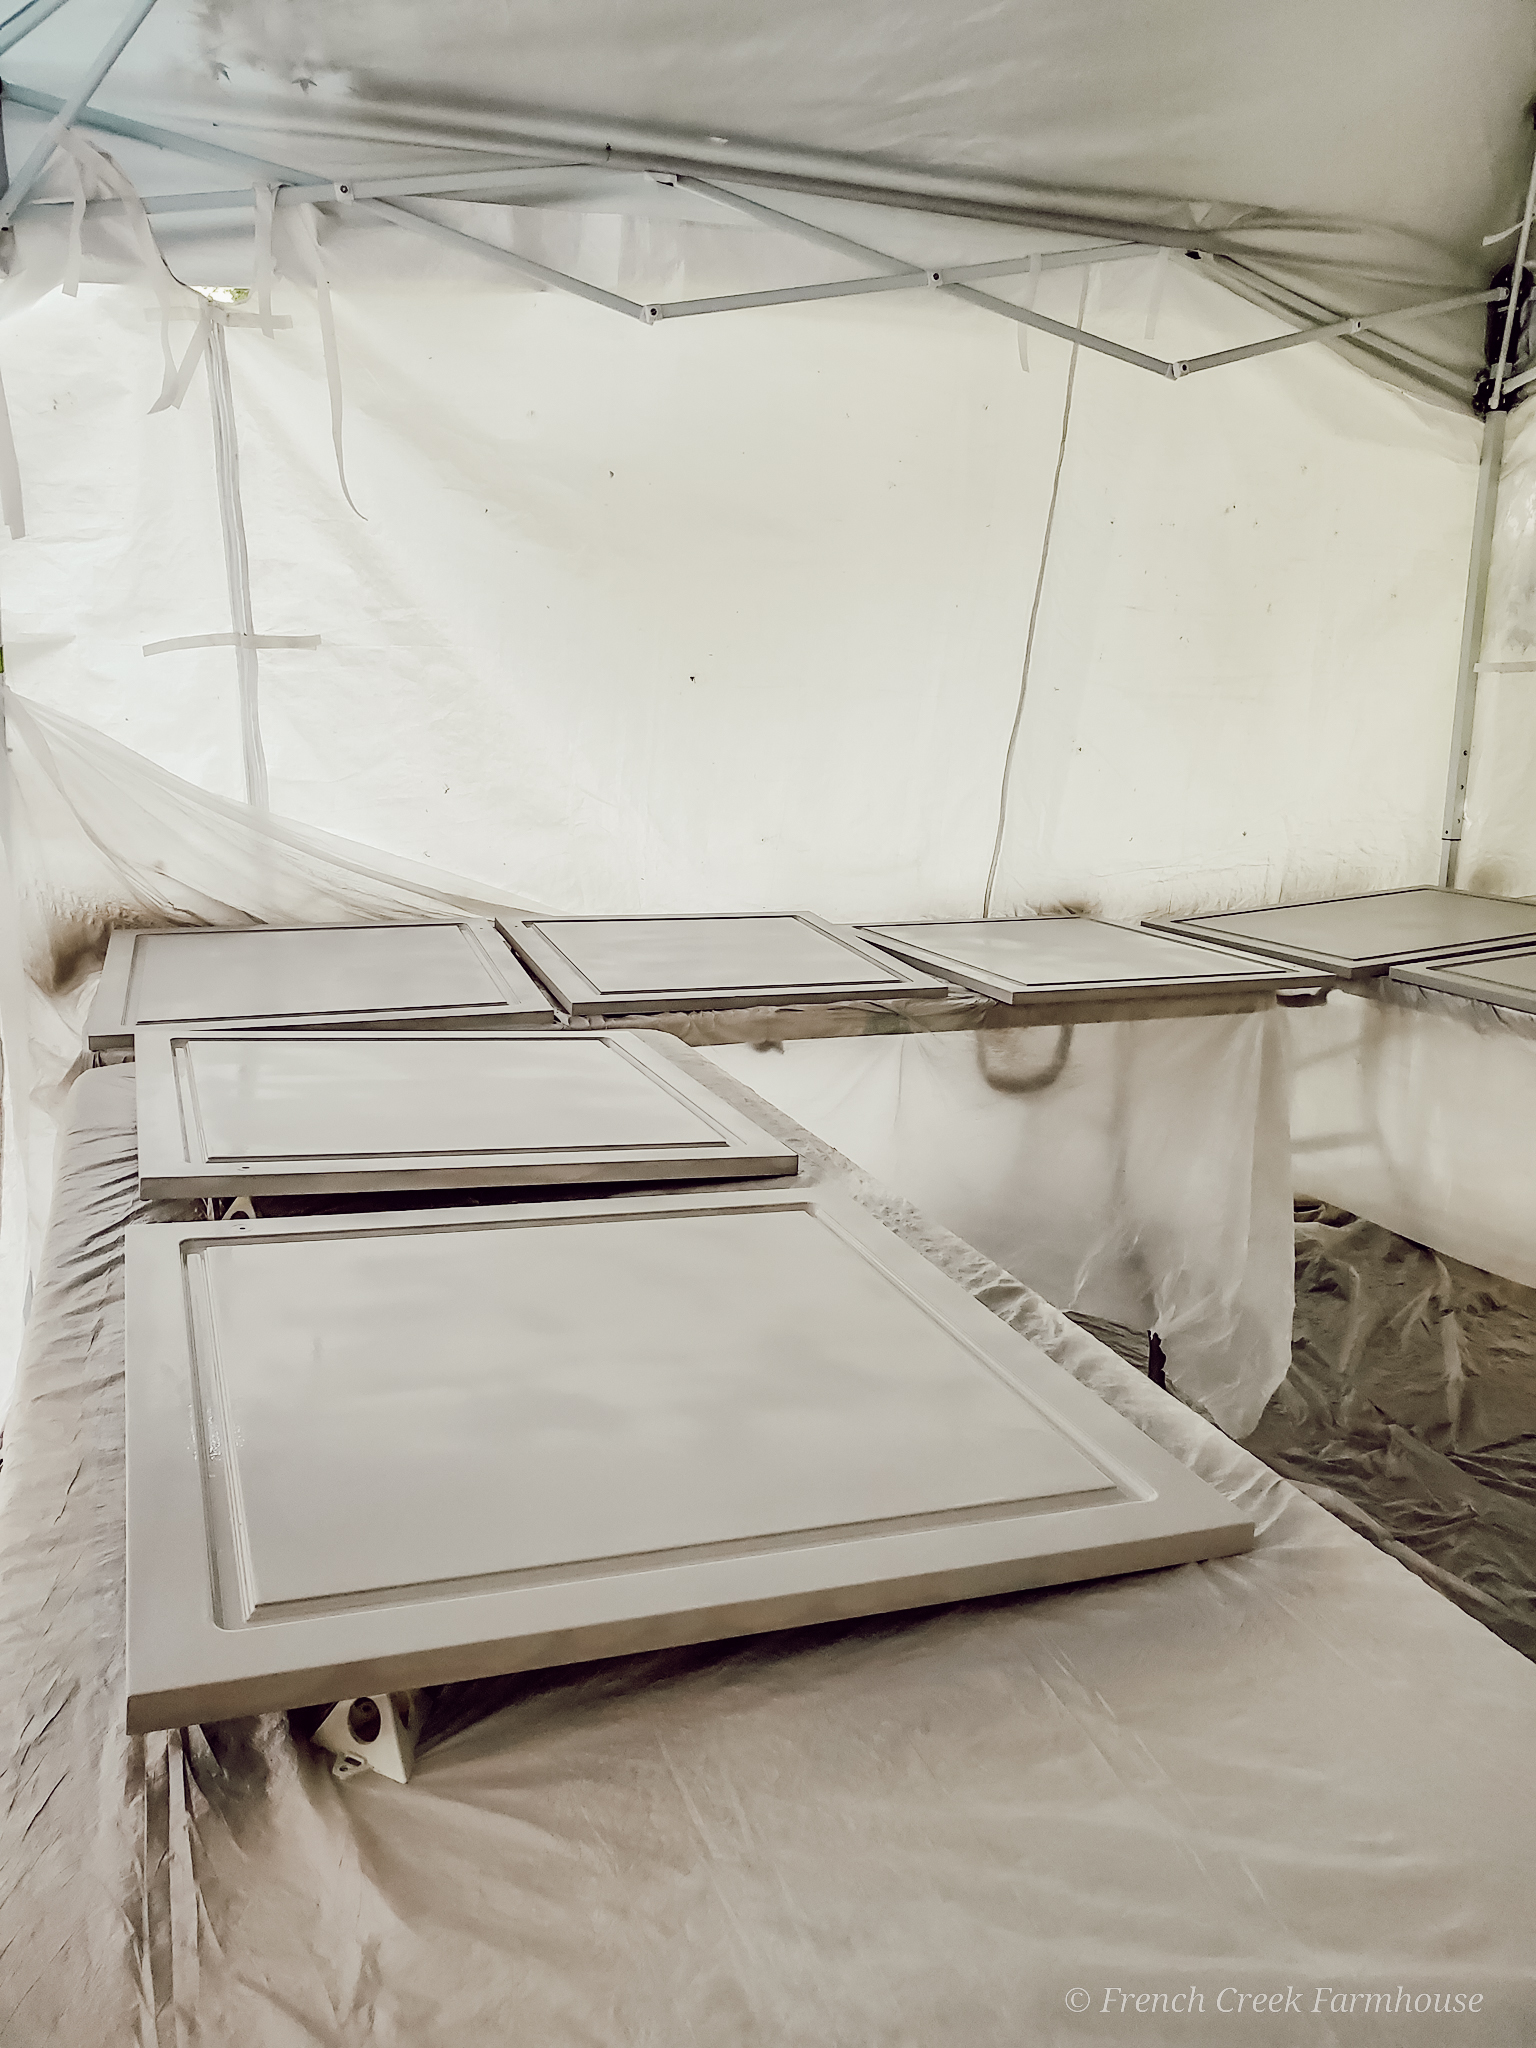 A pop-up canopy tent makes for an easy paint booth